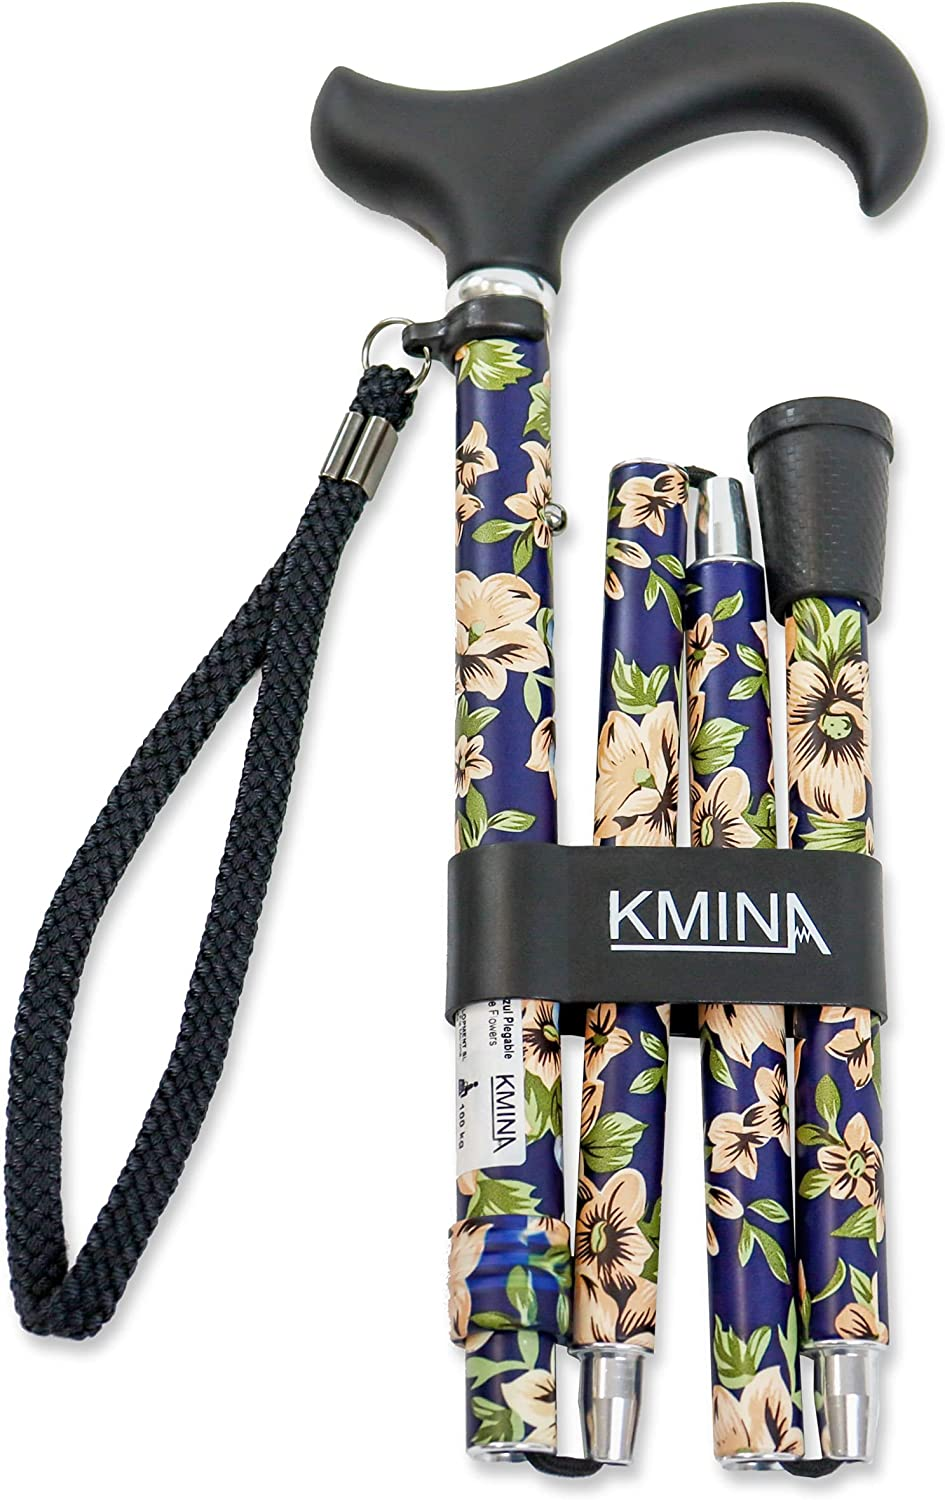 KMINA PRO - Selling and selling Folding Cane for Fashionable Flower Max 66% OFF Can Women